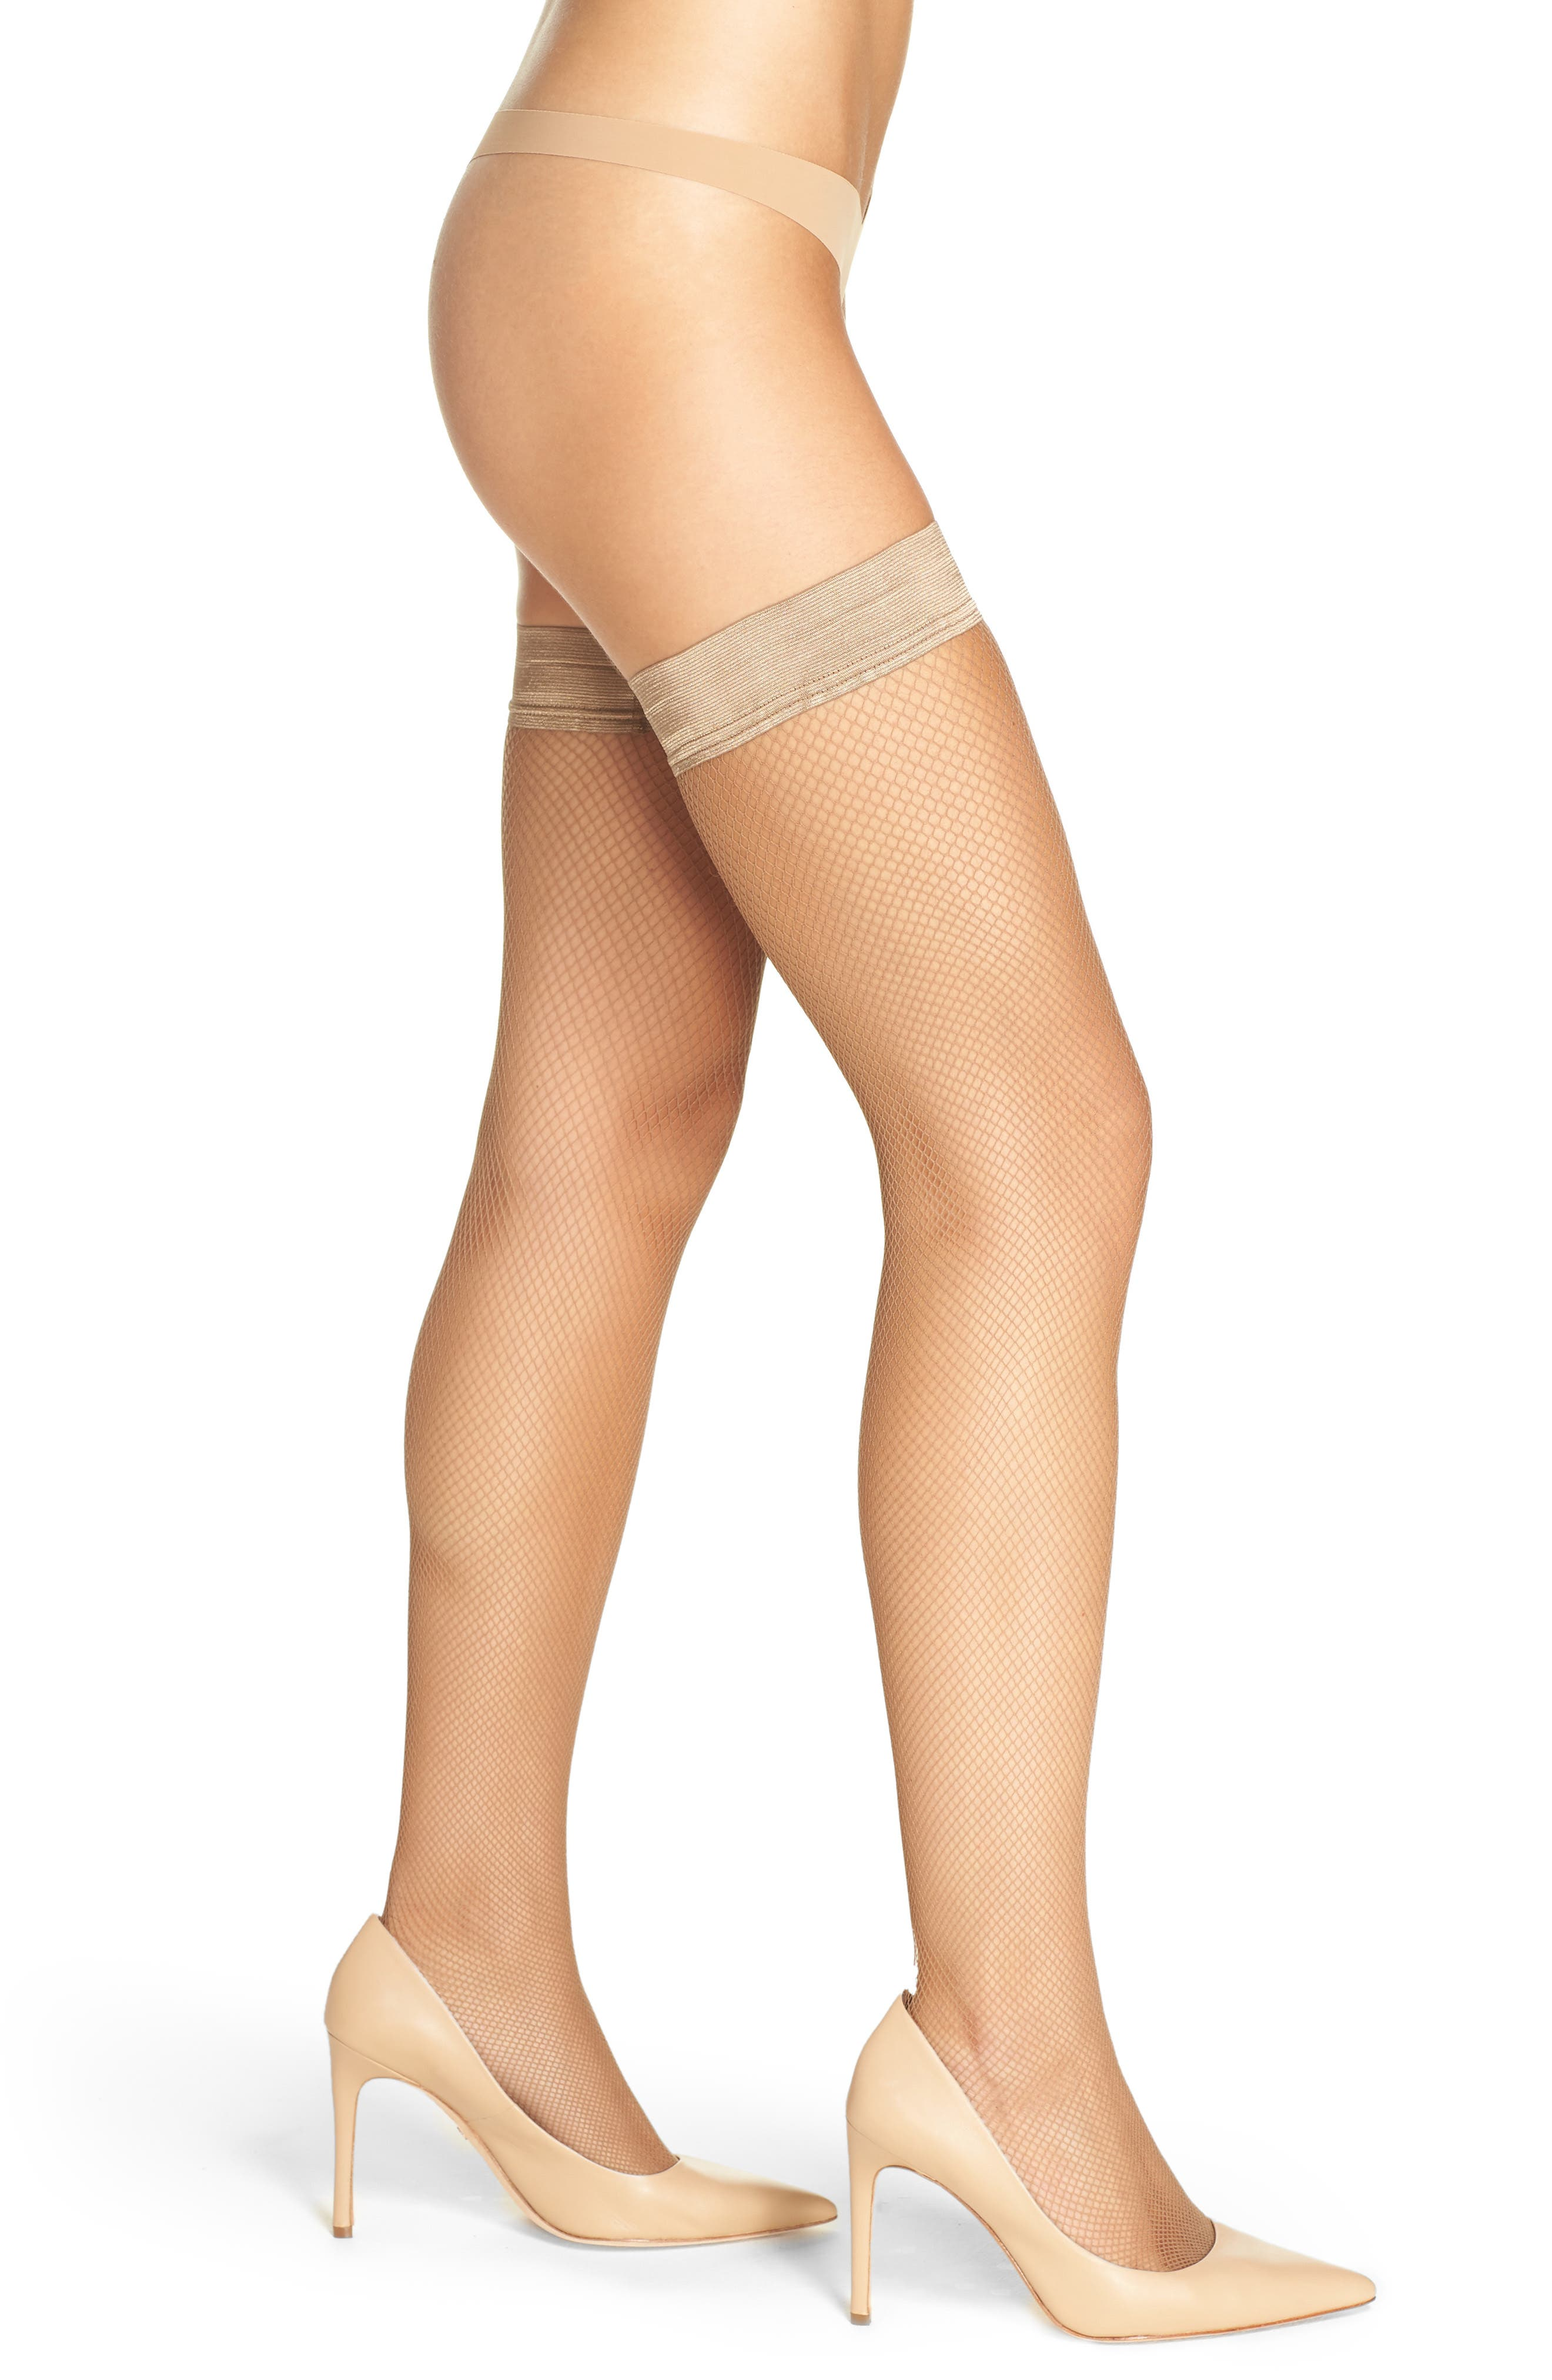 Main Image - Oroblu 'Bas Tricot' Fishnet Stay-Up Stockings